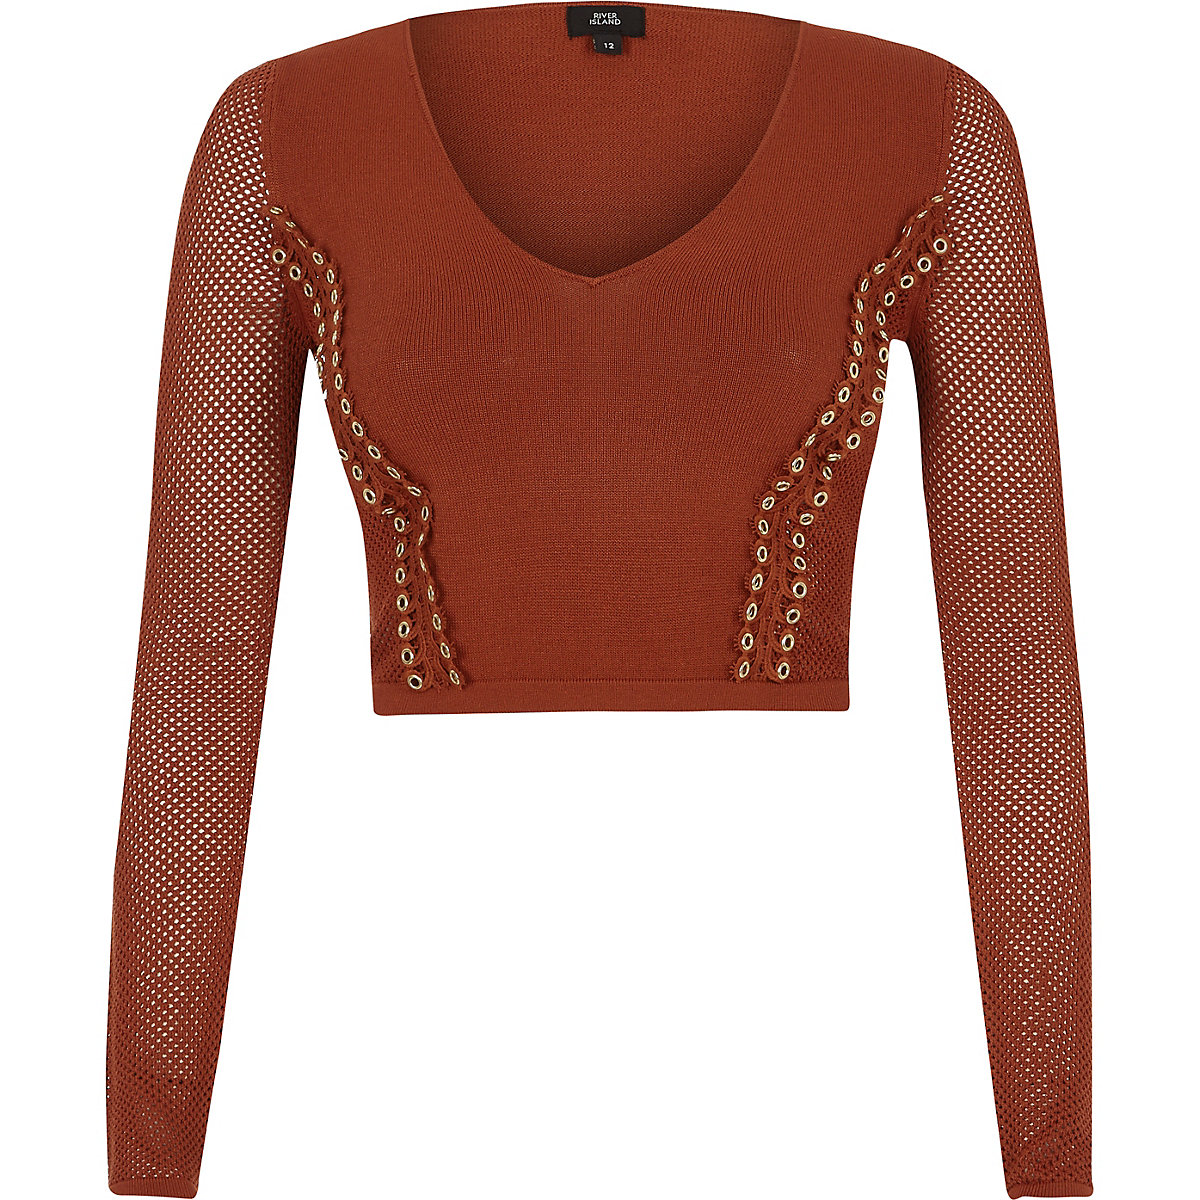 Orange eyelet pointelle knit V neck crop top